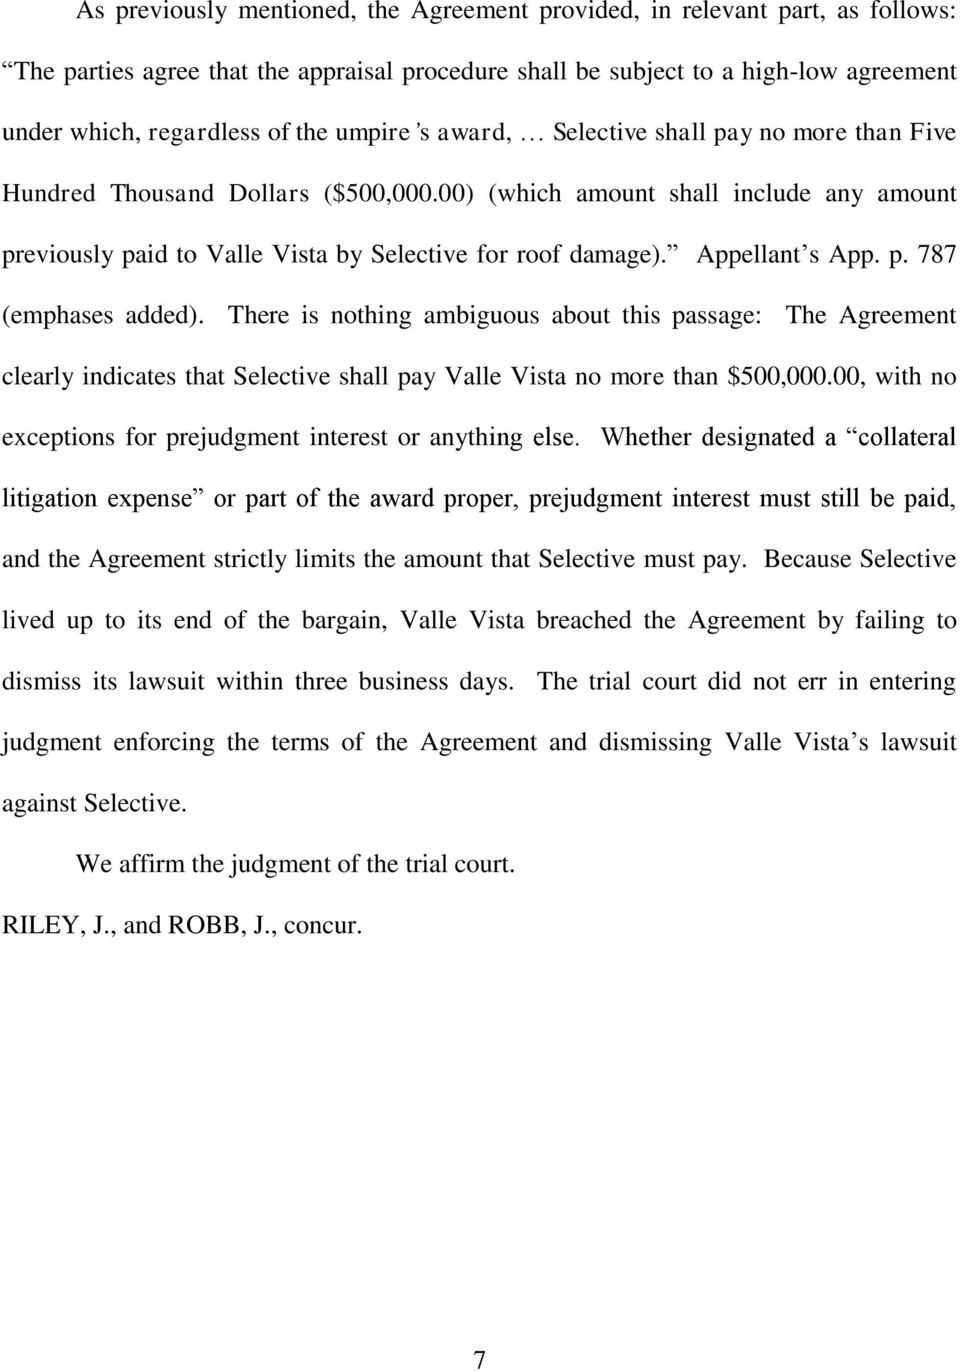 Appellant s App. p. 787 (emphases added. There is nothing ambiguous about this passage: The Agreement clearly indicates that Selective shall pay Valle Vista no more than $500,000.